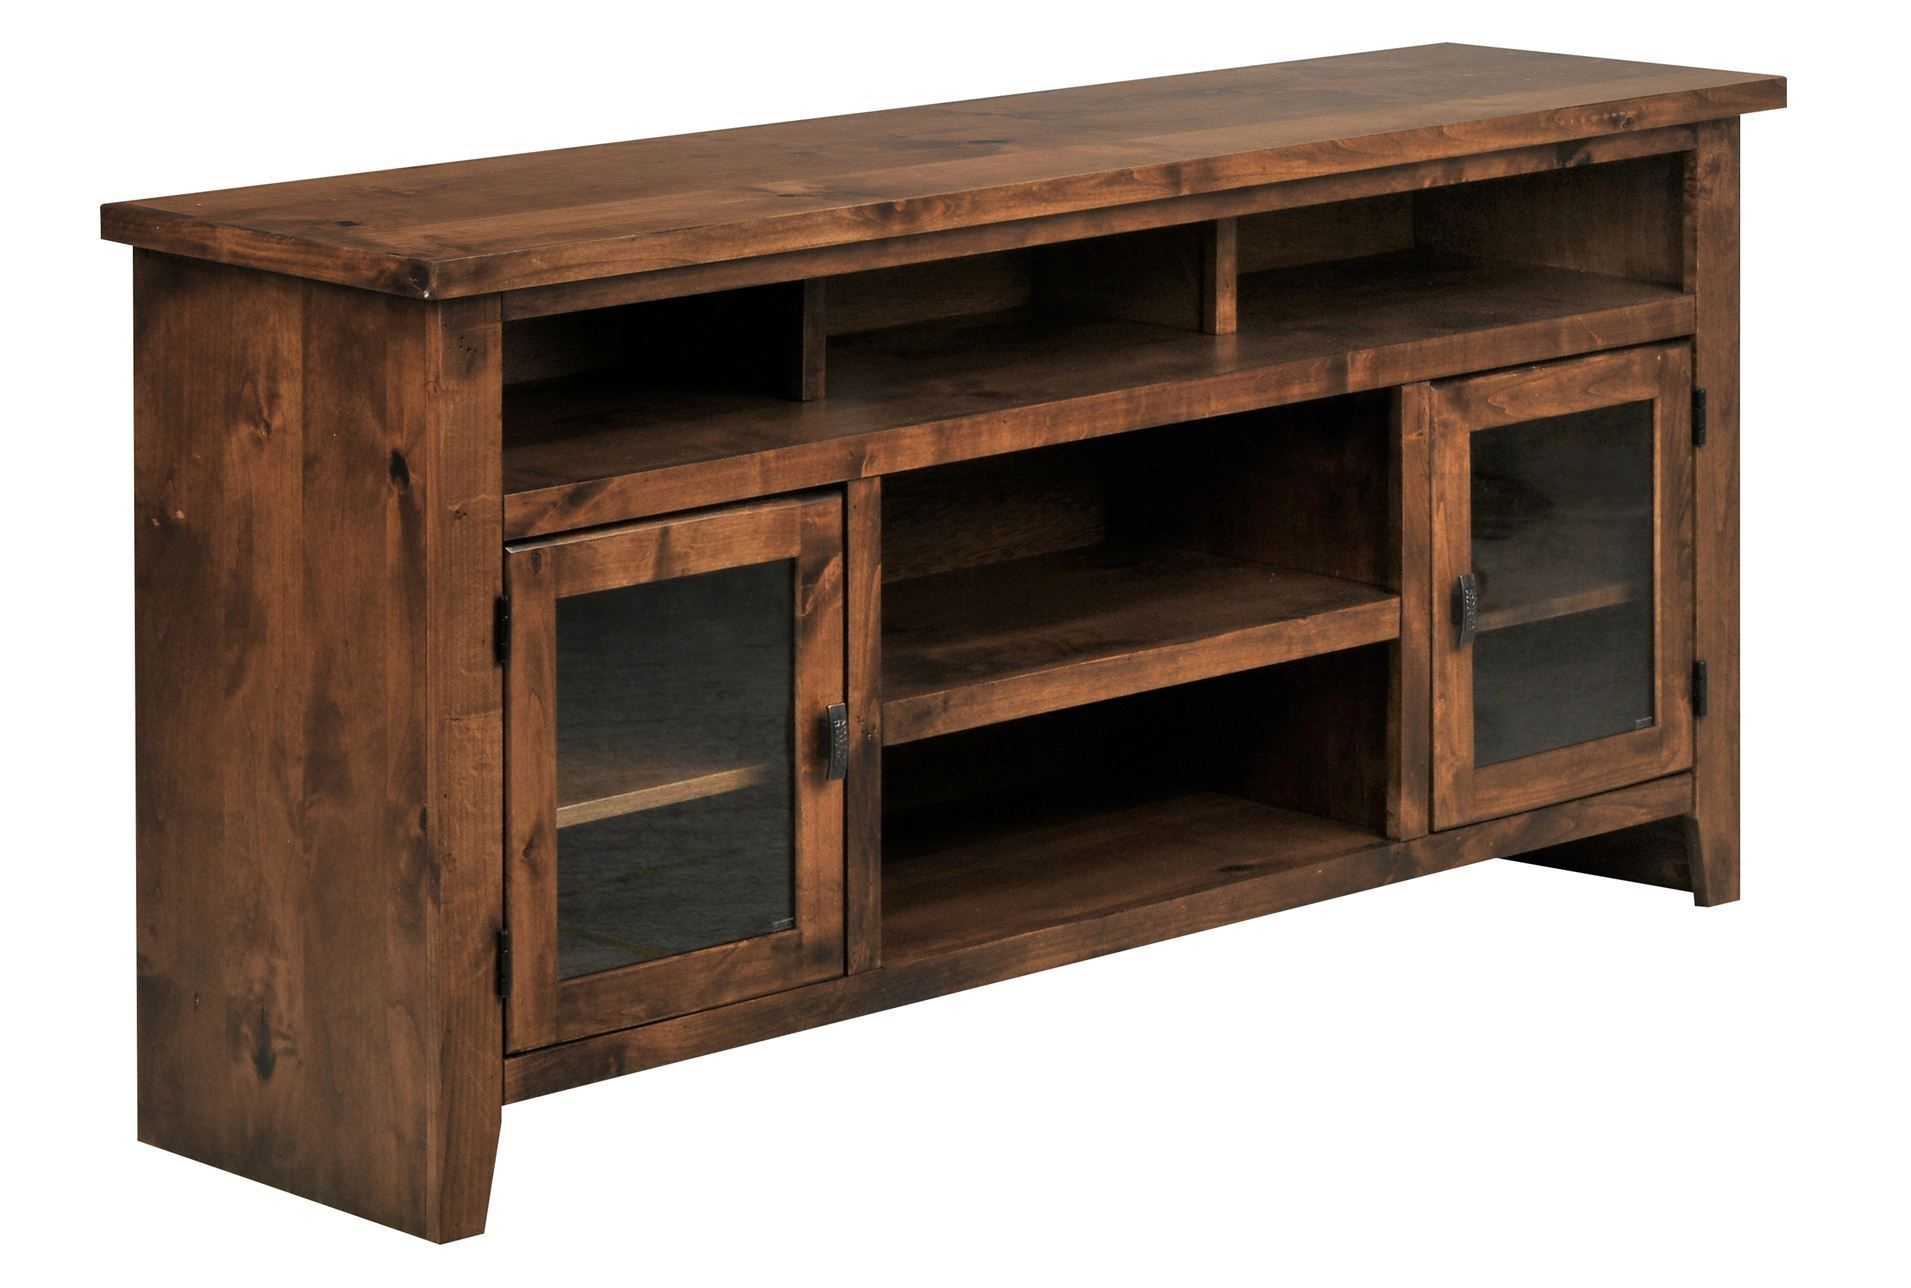 65 Inch Tv Stand, Trent, Fruitwood | 65 Inch Tv Stand, Tv Stands And Tvs Intended For Sinclair Grey 68 Inch Tv Stands (View 10 of 30)